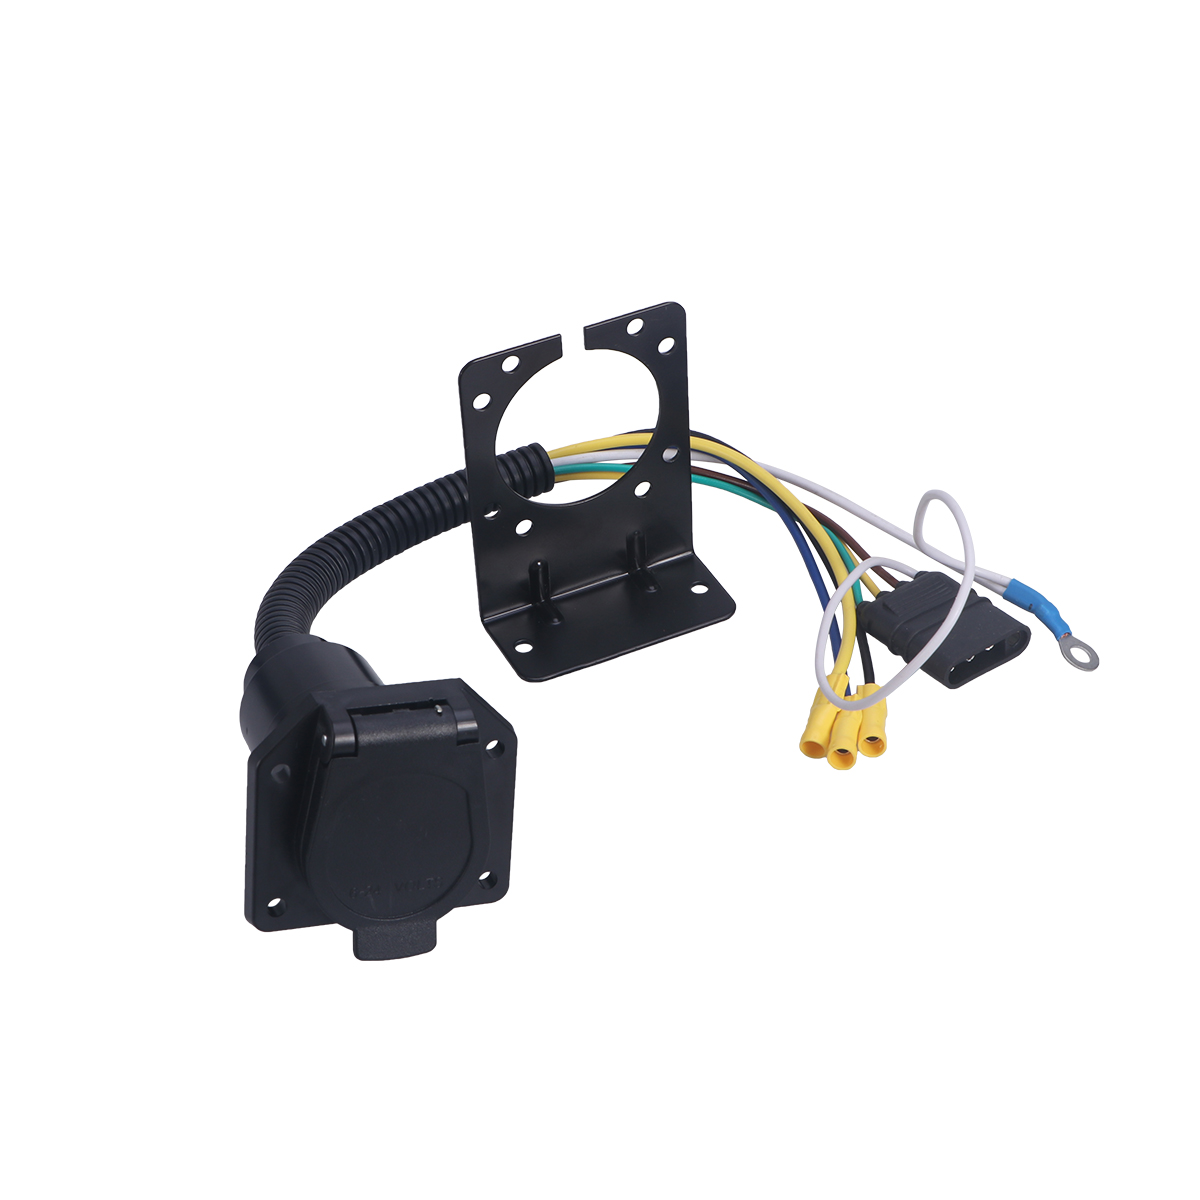 Trailer Towing Wiring Adapter Connector Kit System Plug Multi-Tow Hitch Truck